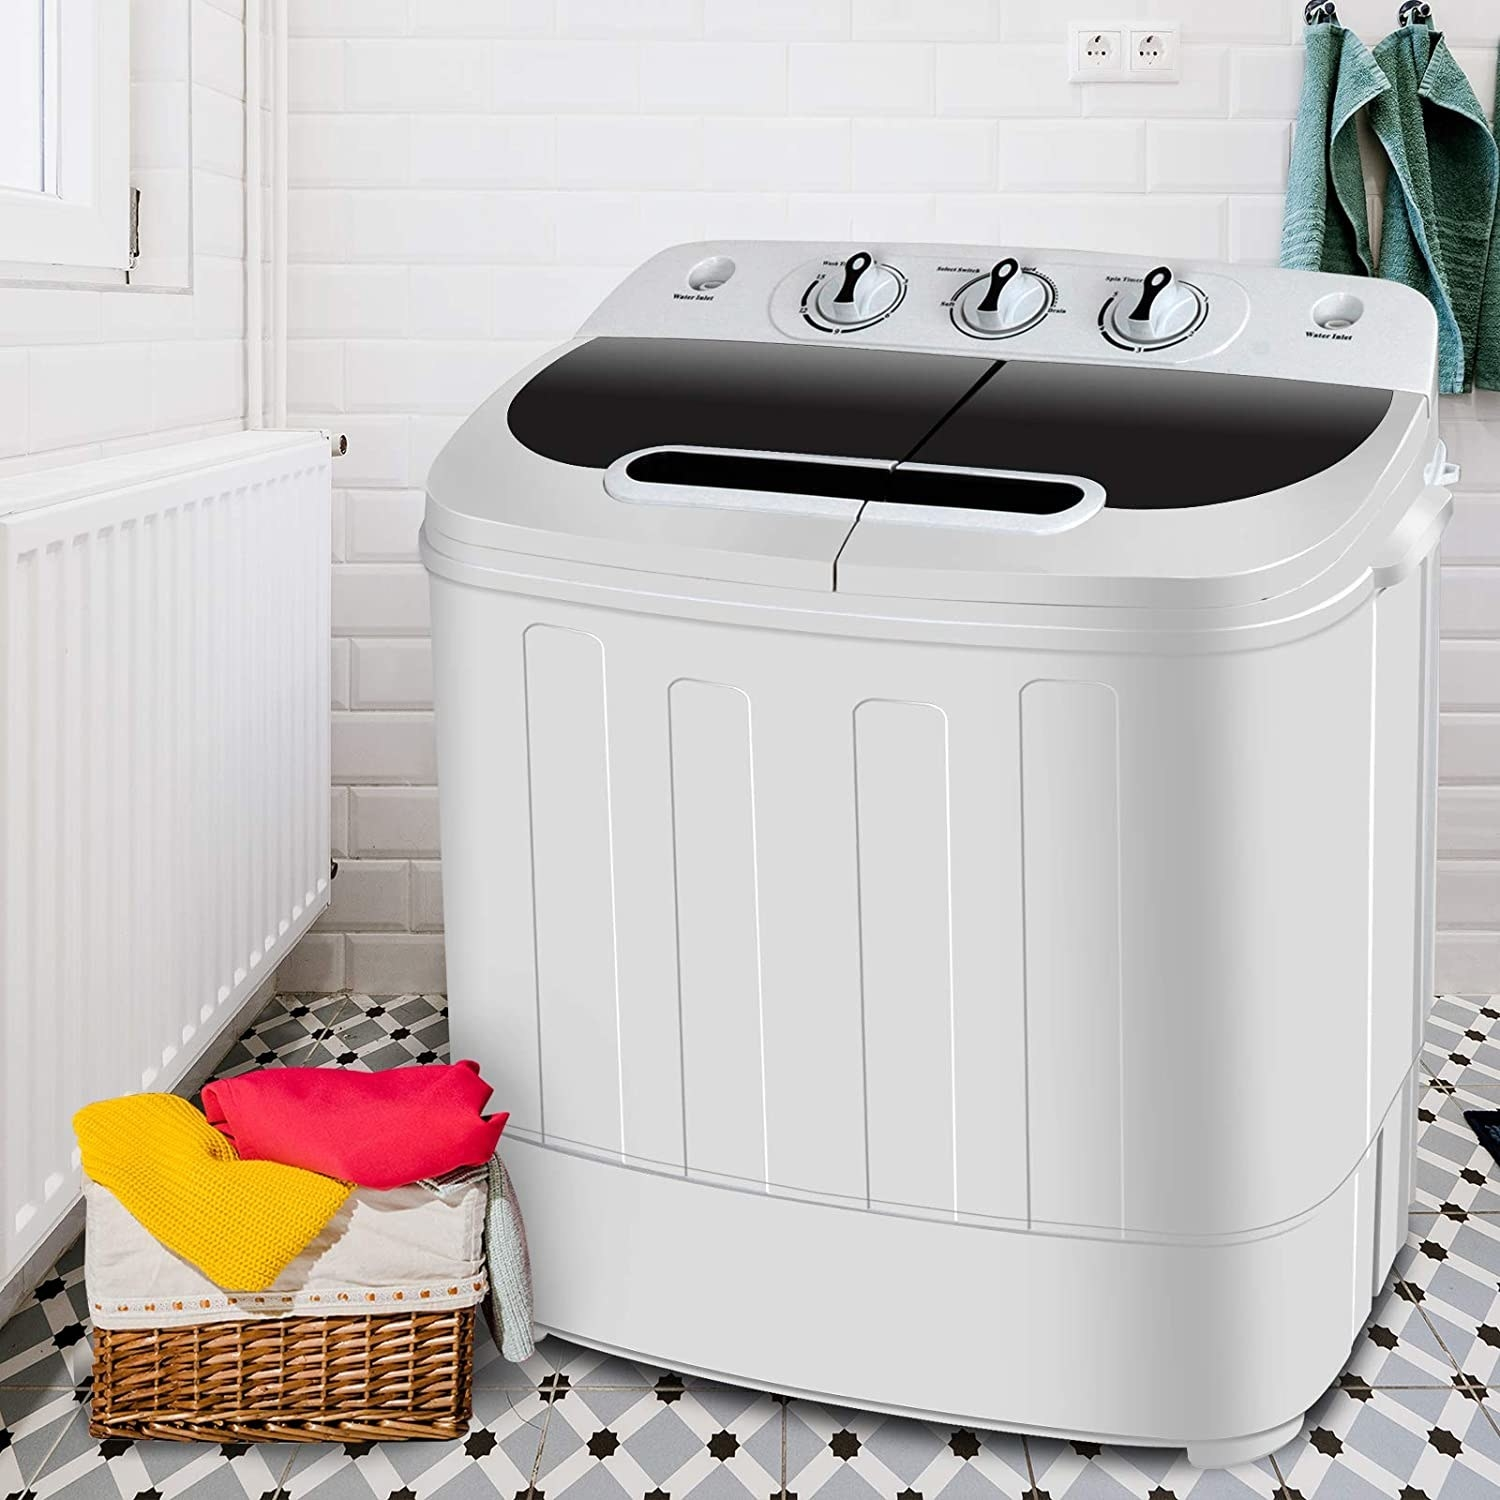 A small square shaped laundry machine with a lid and a small control panel